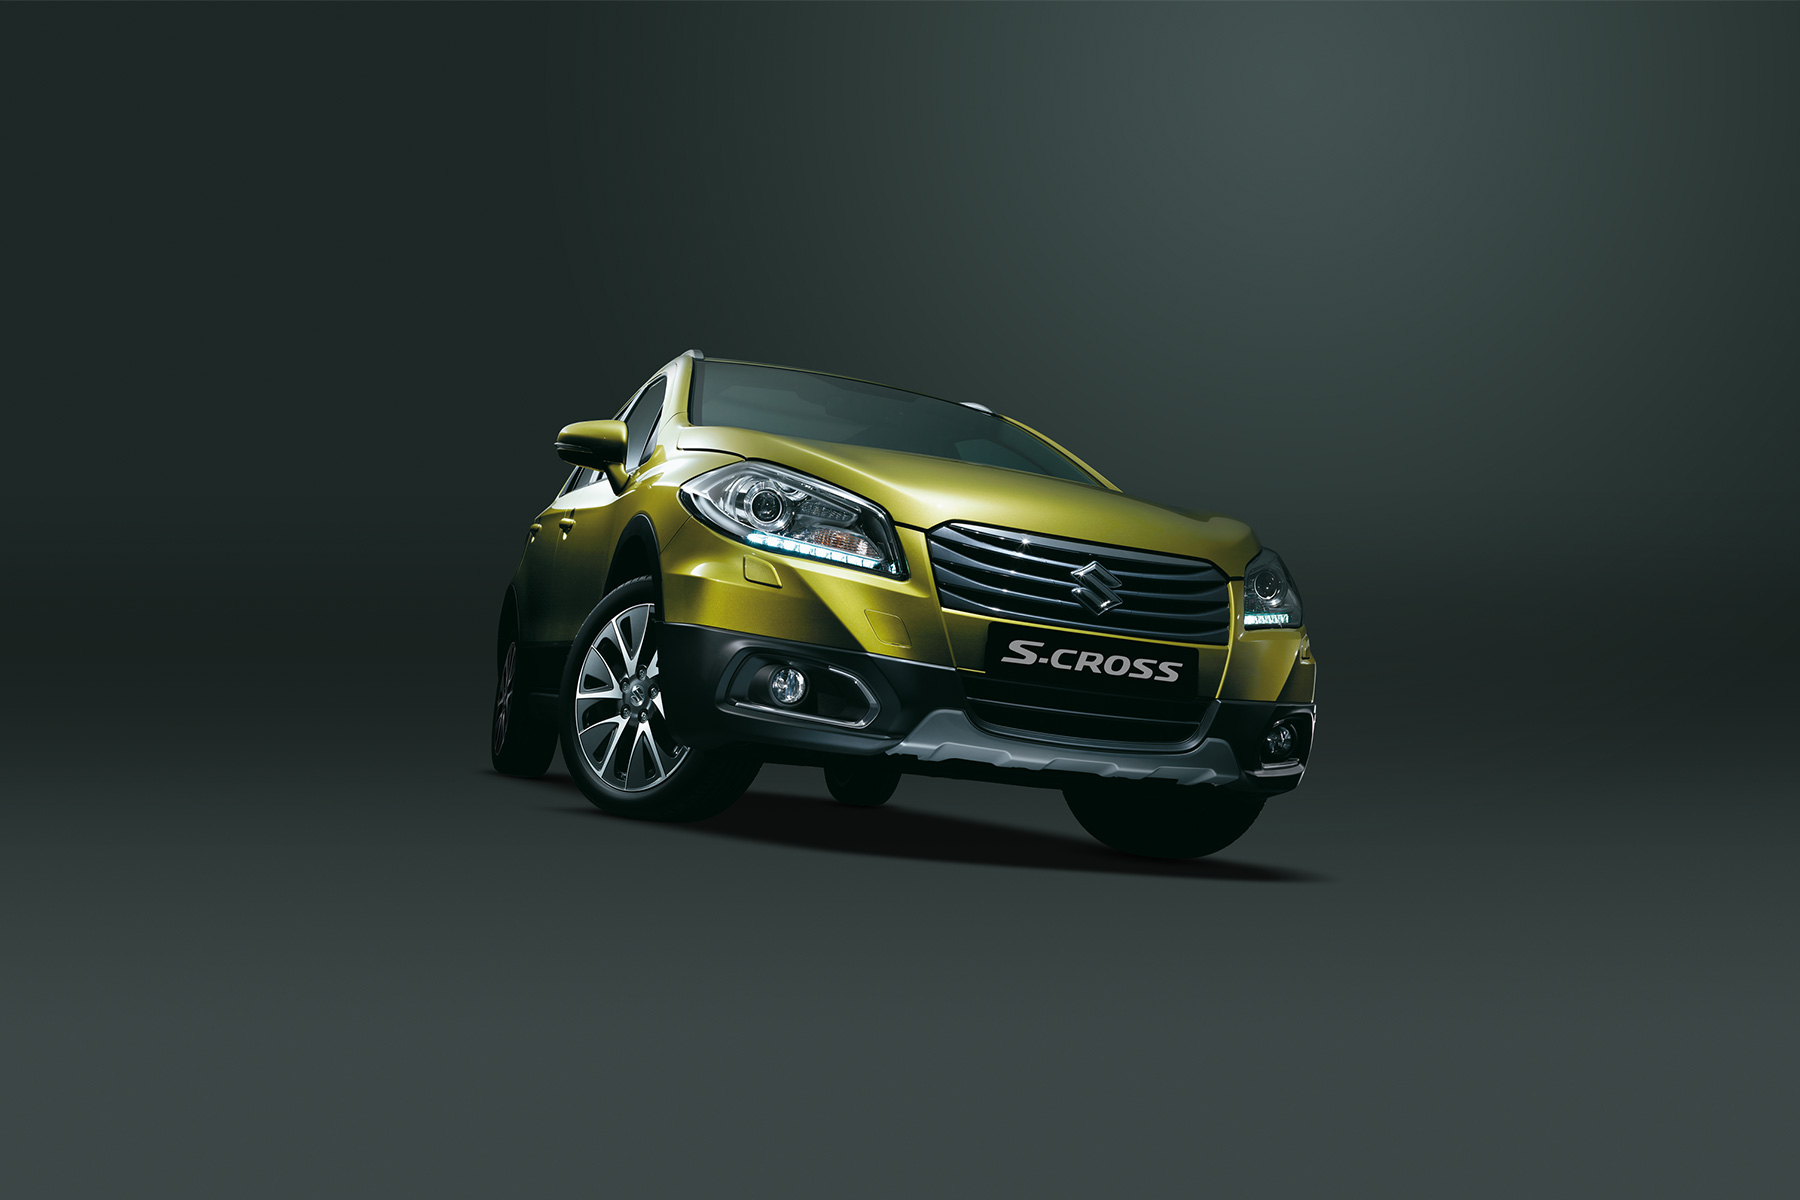 Maruti Suzuki S-Cross launching in January 2015